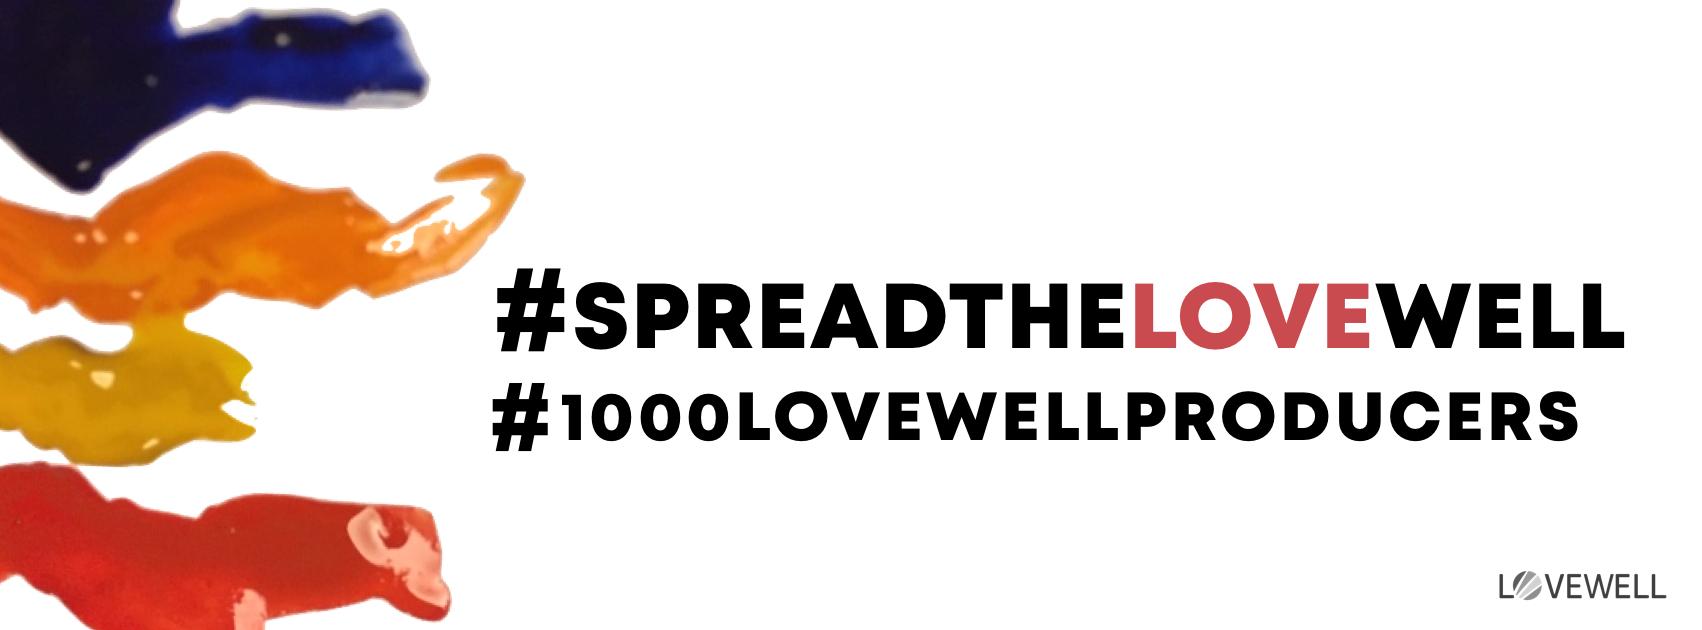 #SpreadTheLOVEwell